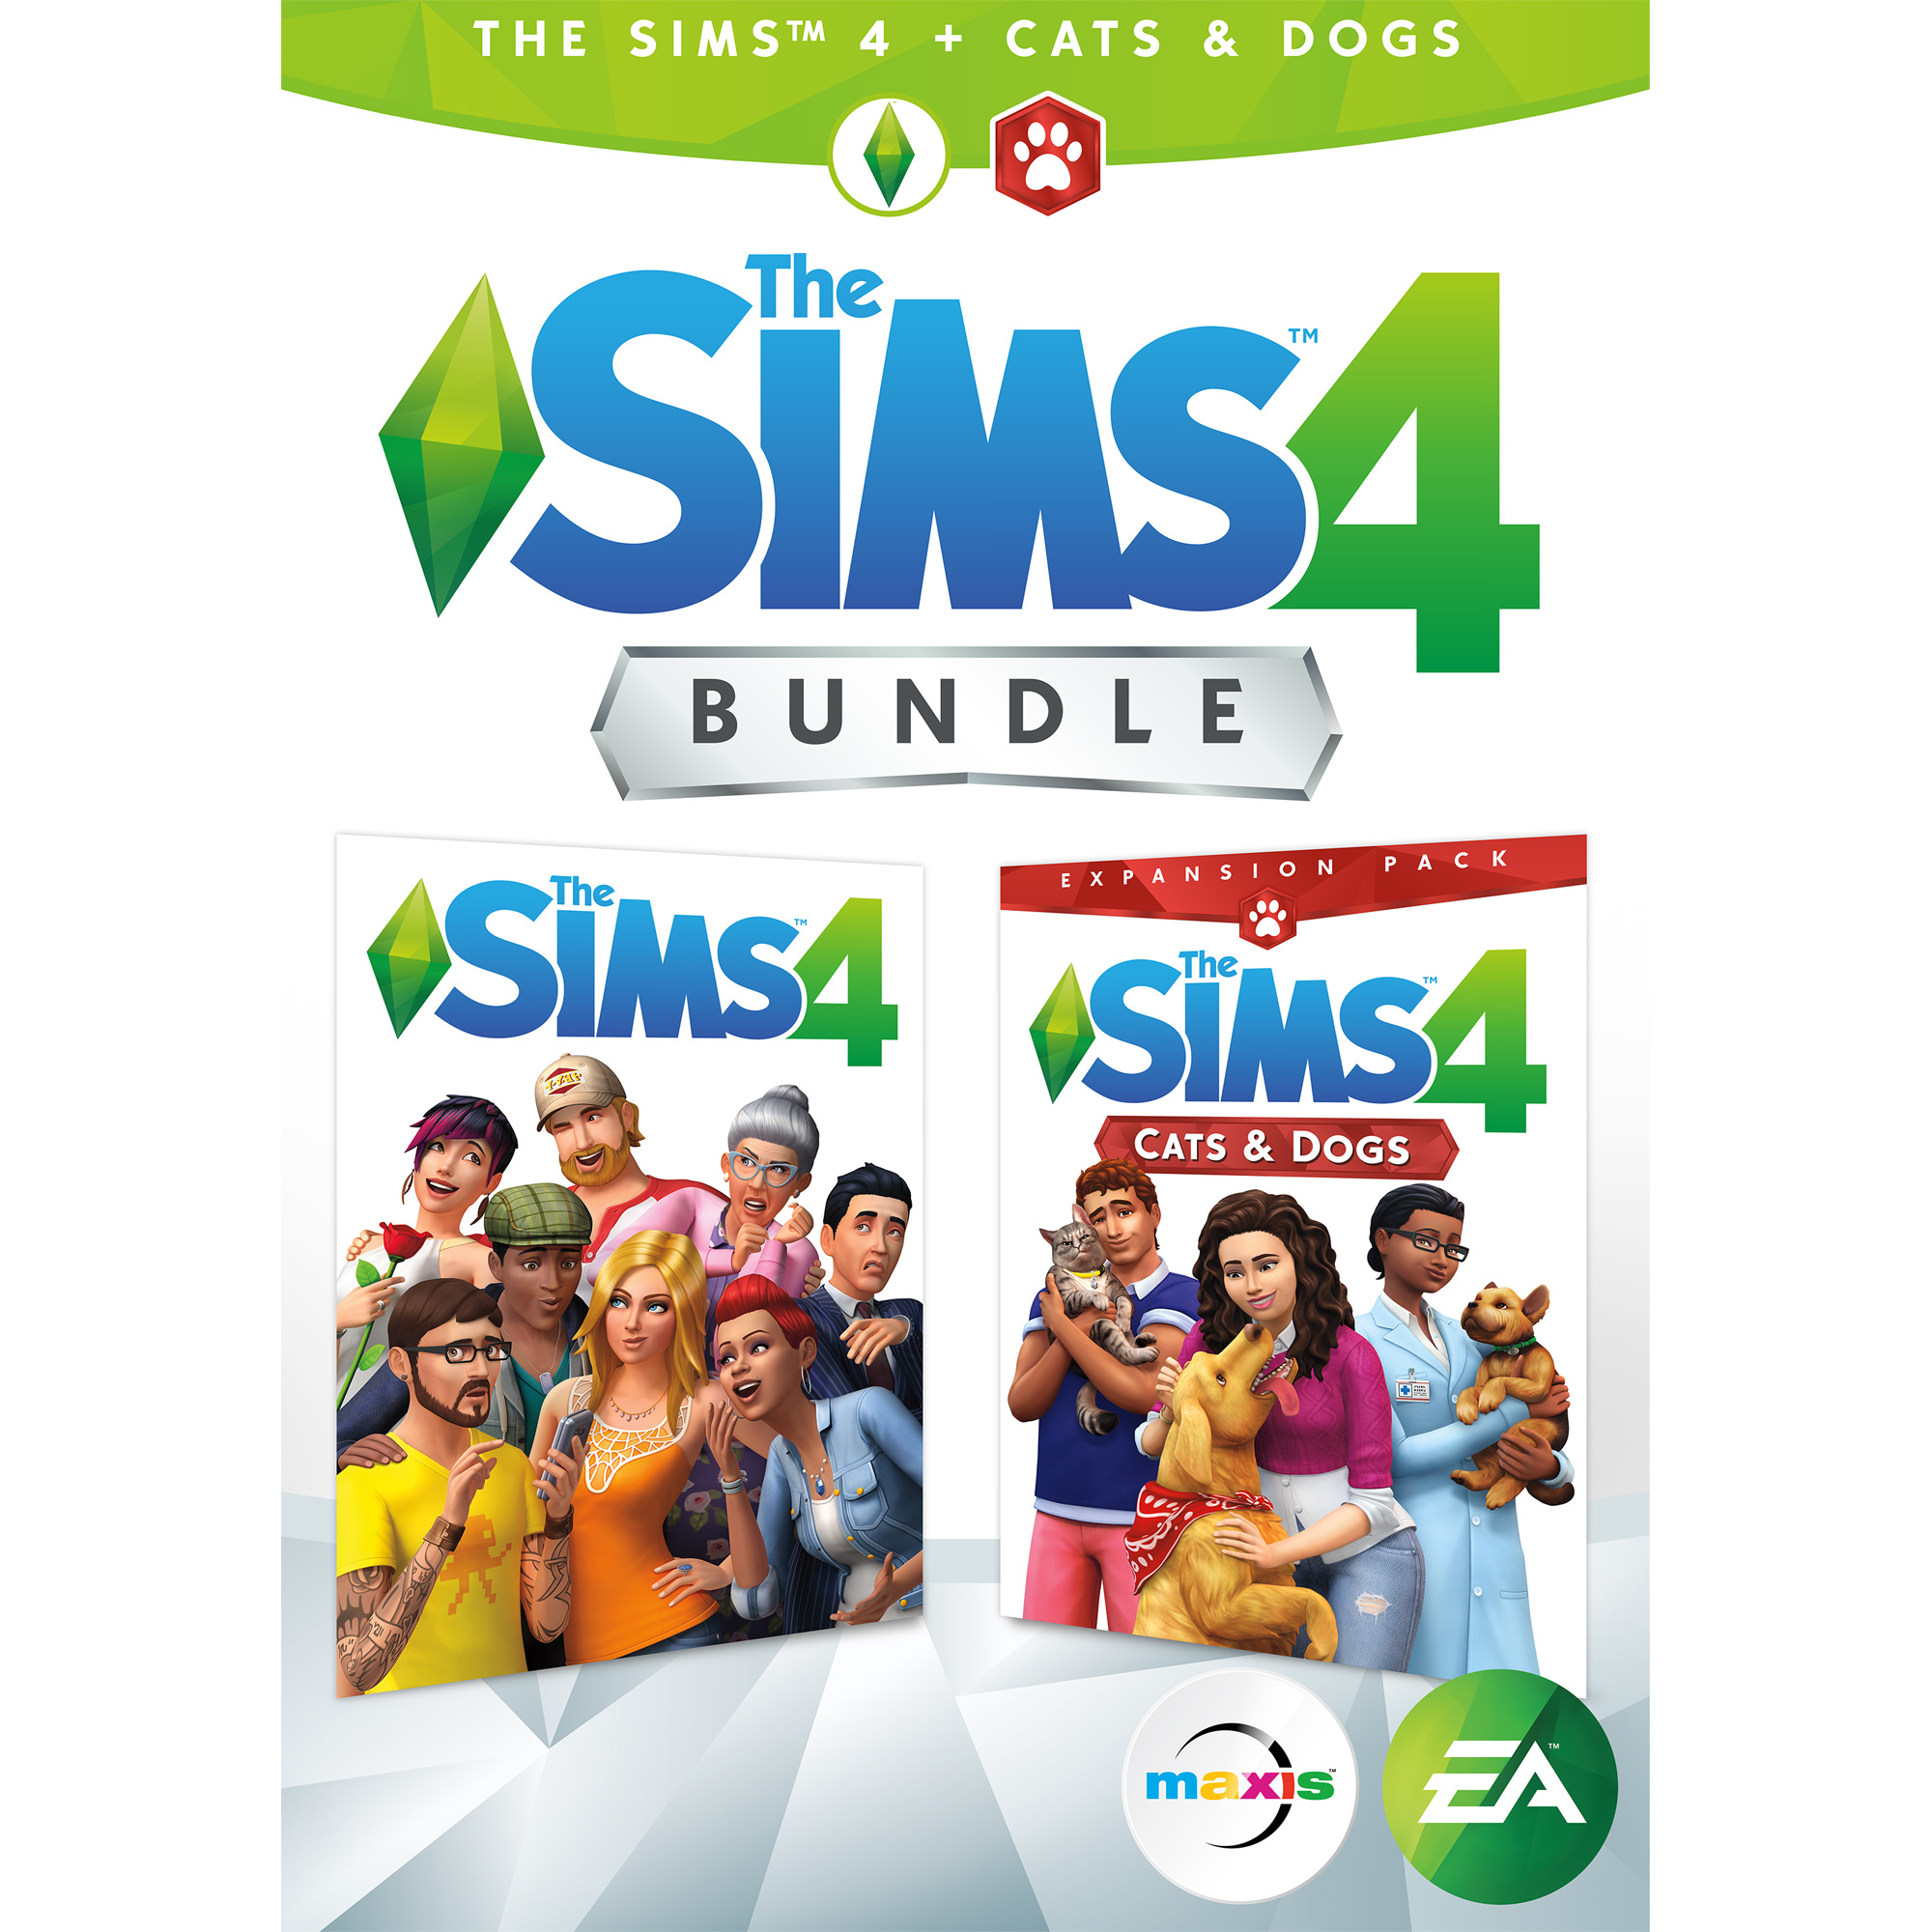 Electronic Arts The Sims 4 Plus Cats & Dogs Bundle (Email Delivery)